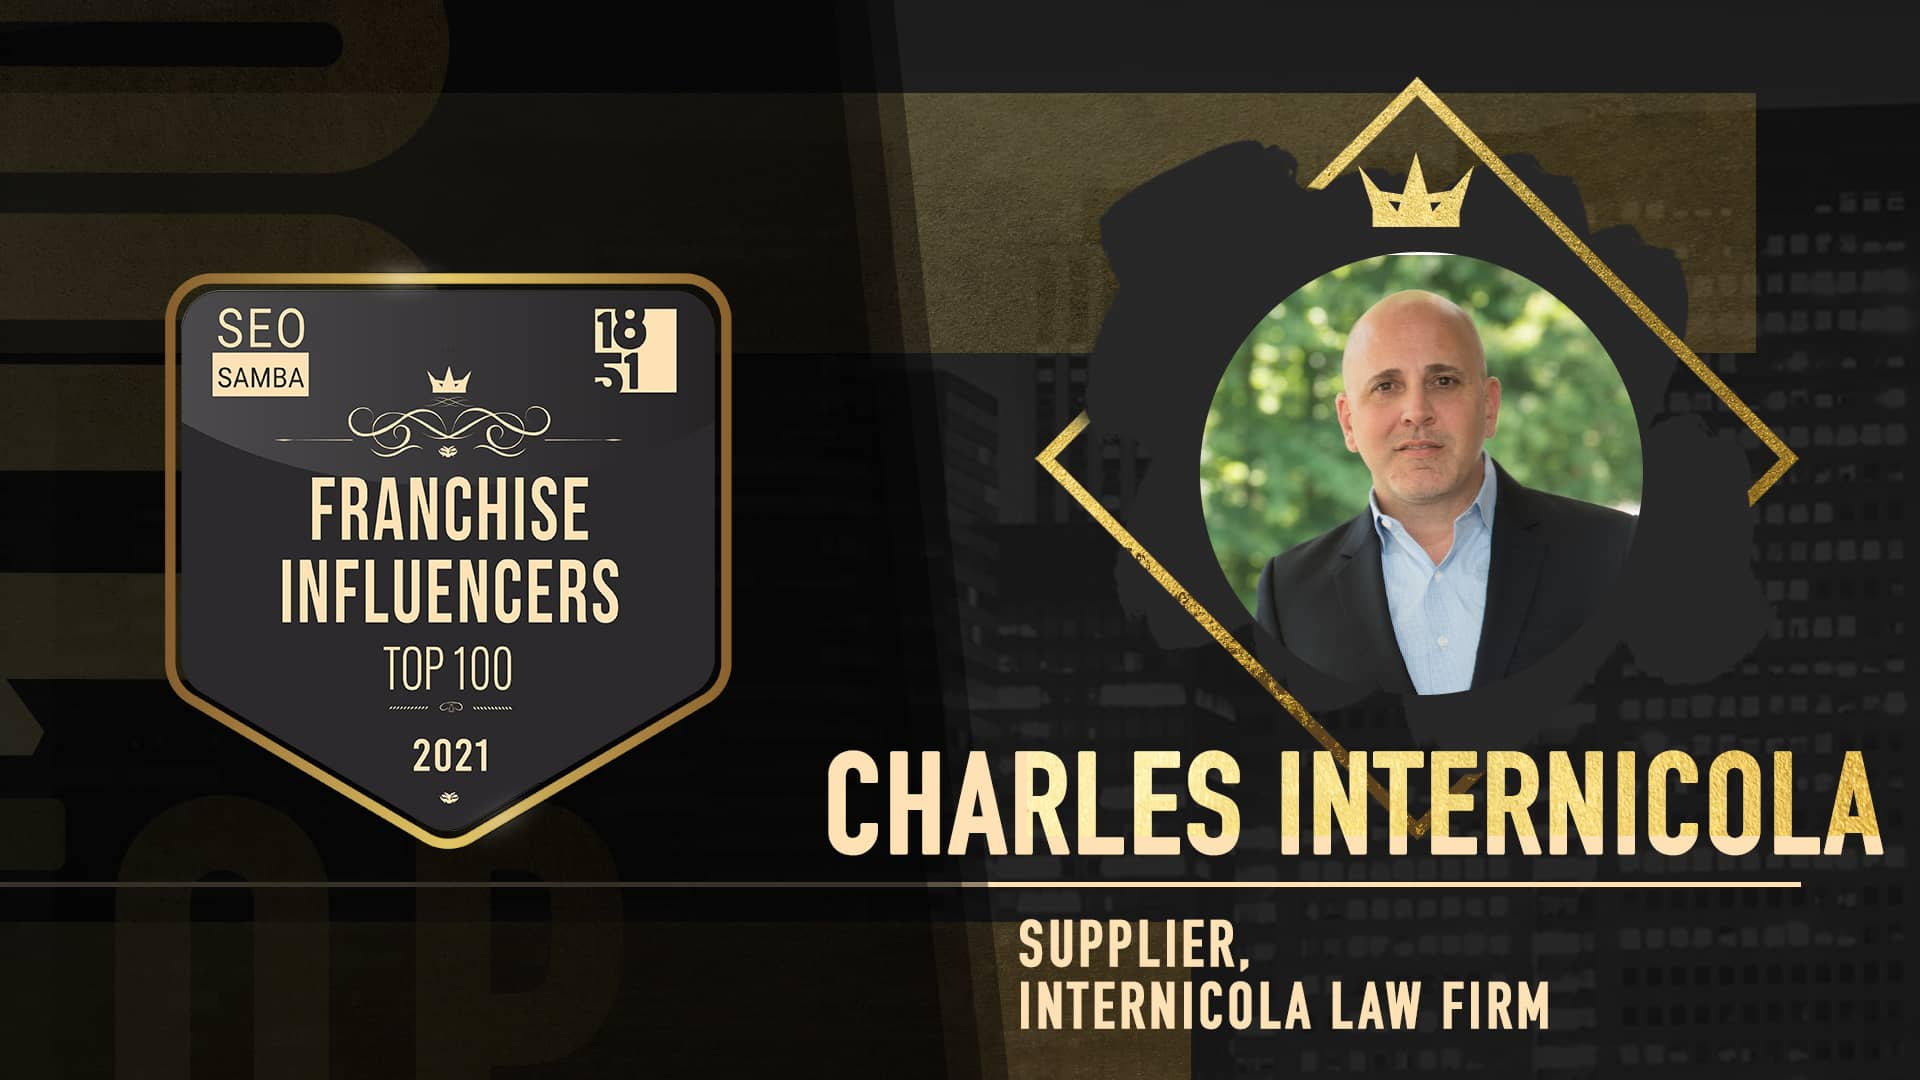 charles-internicola-internicola-law-firm